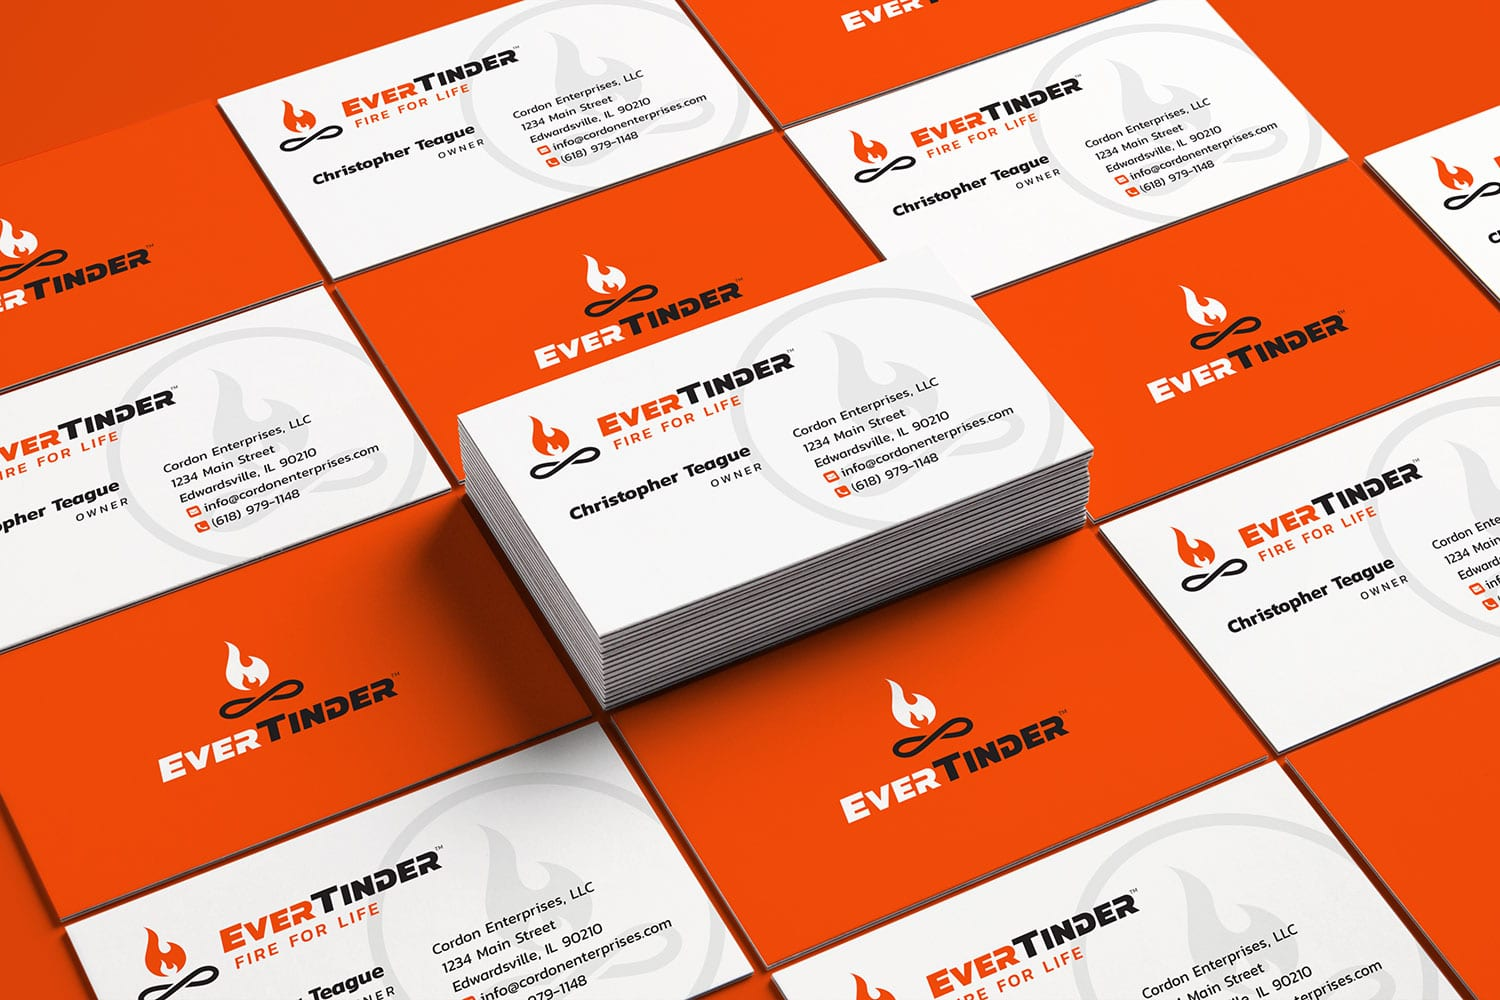 EverTinder business cards 1